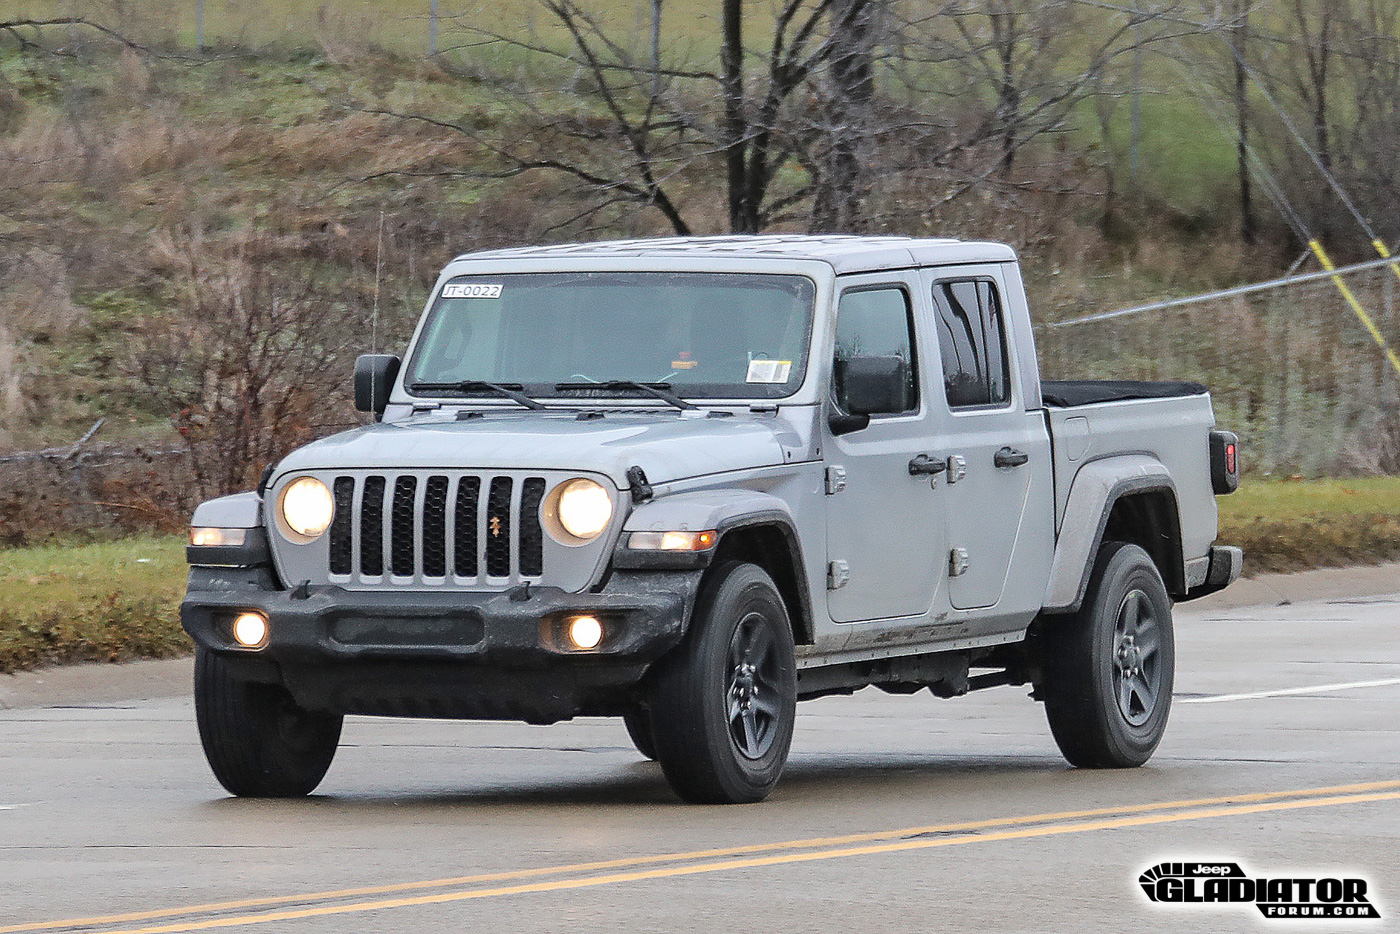 2020-Jeep-Gladiator-JT-Pickup-Truck-Spotted-Undisguised-11.jpg